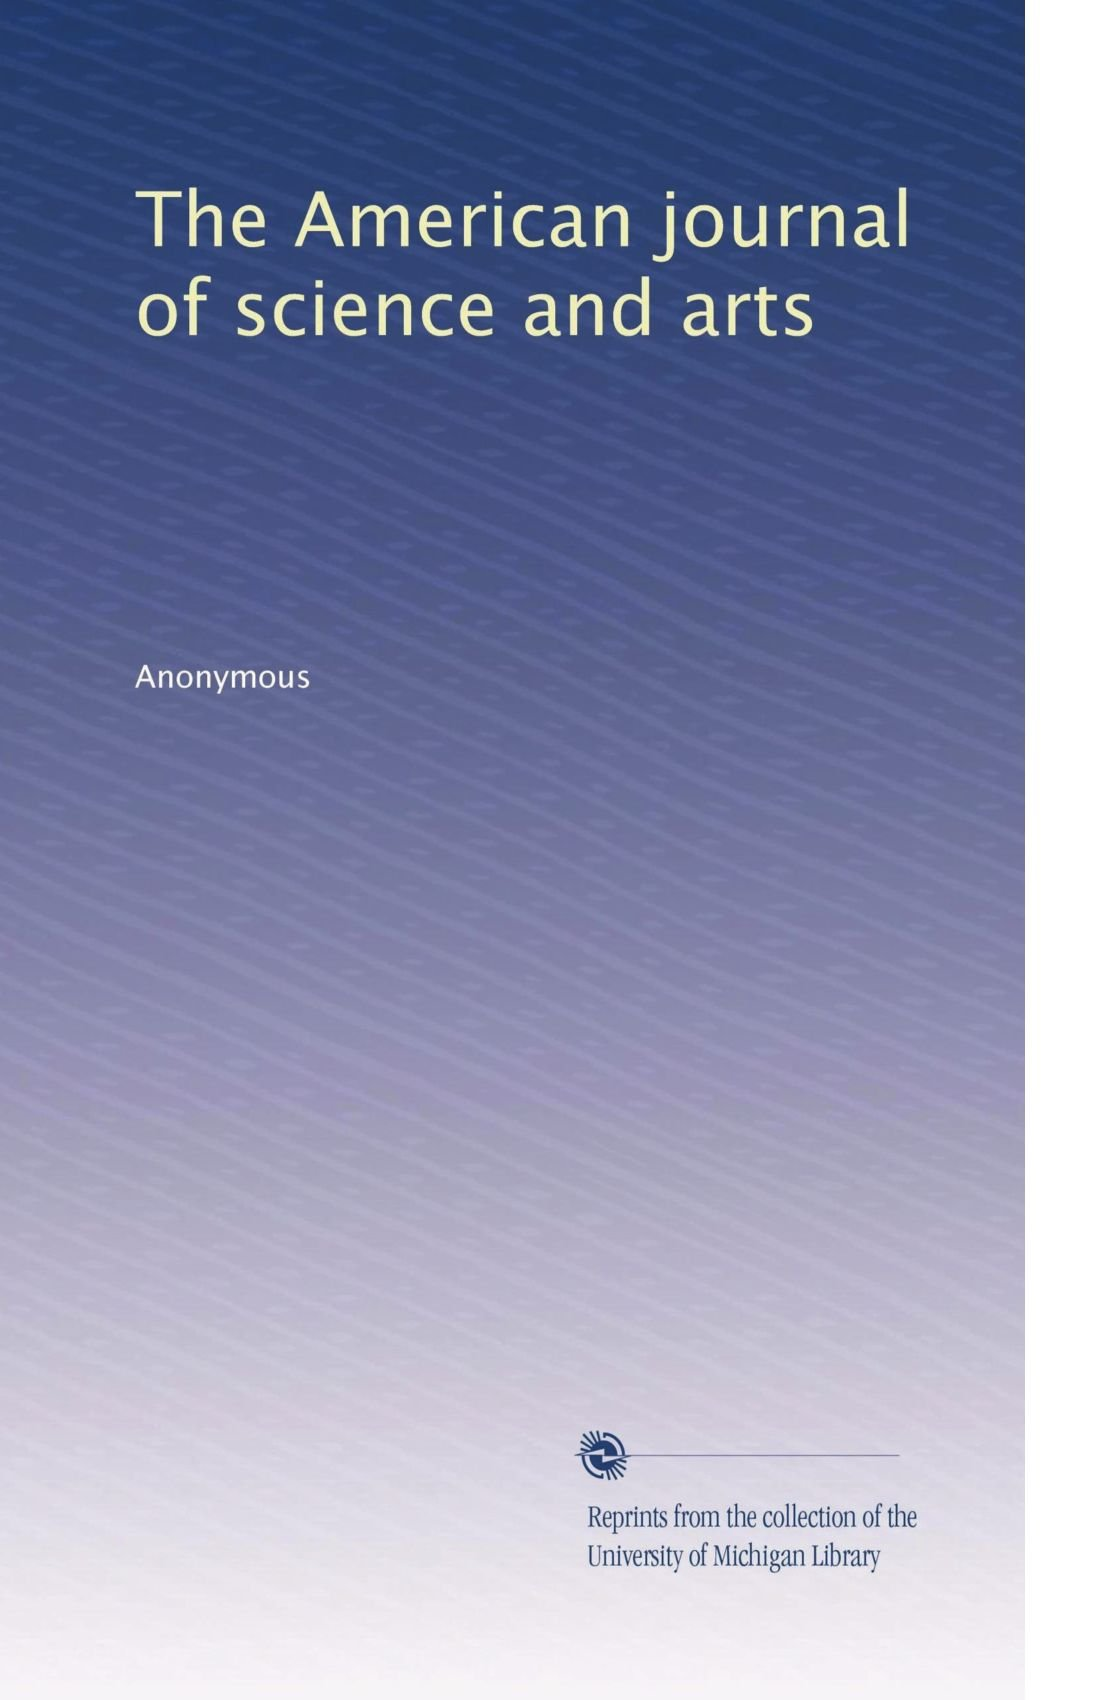 The American journal of science and arts (Volume 92) PDF